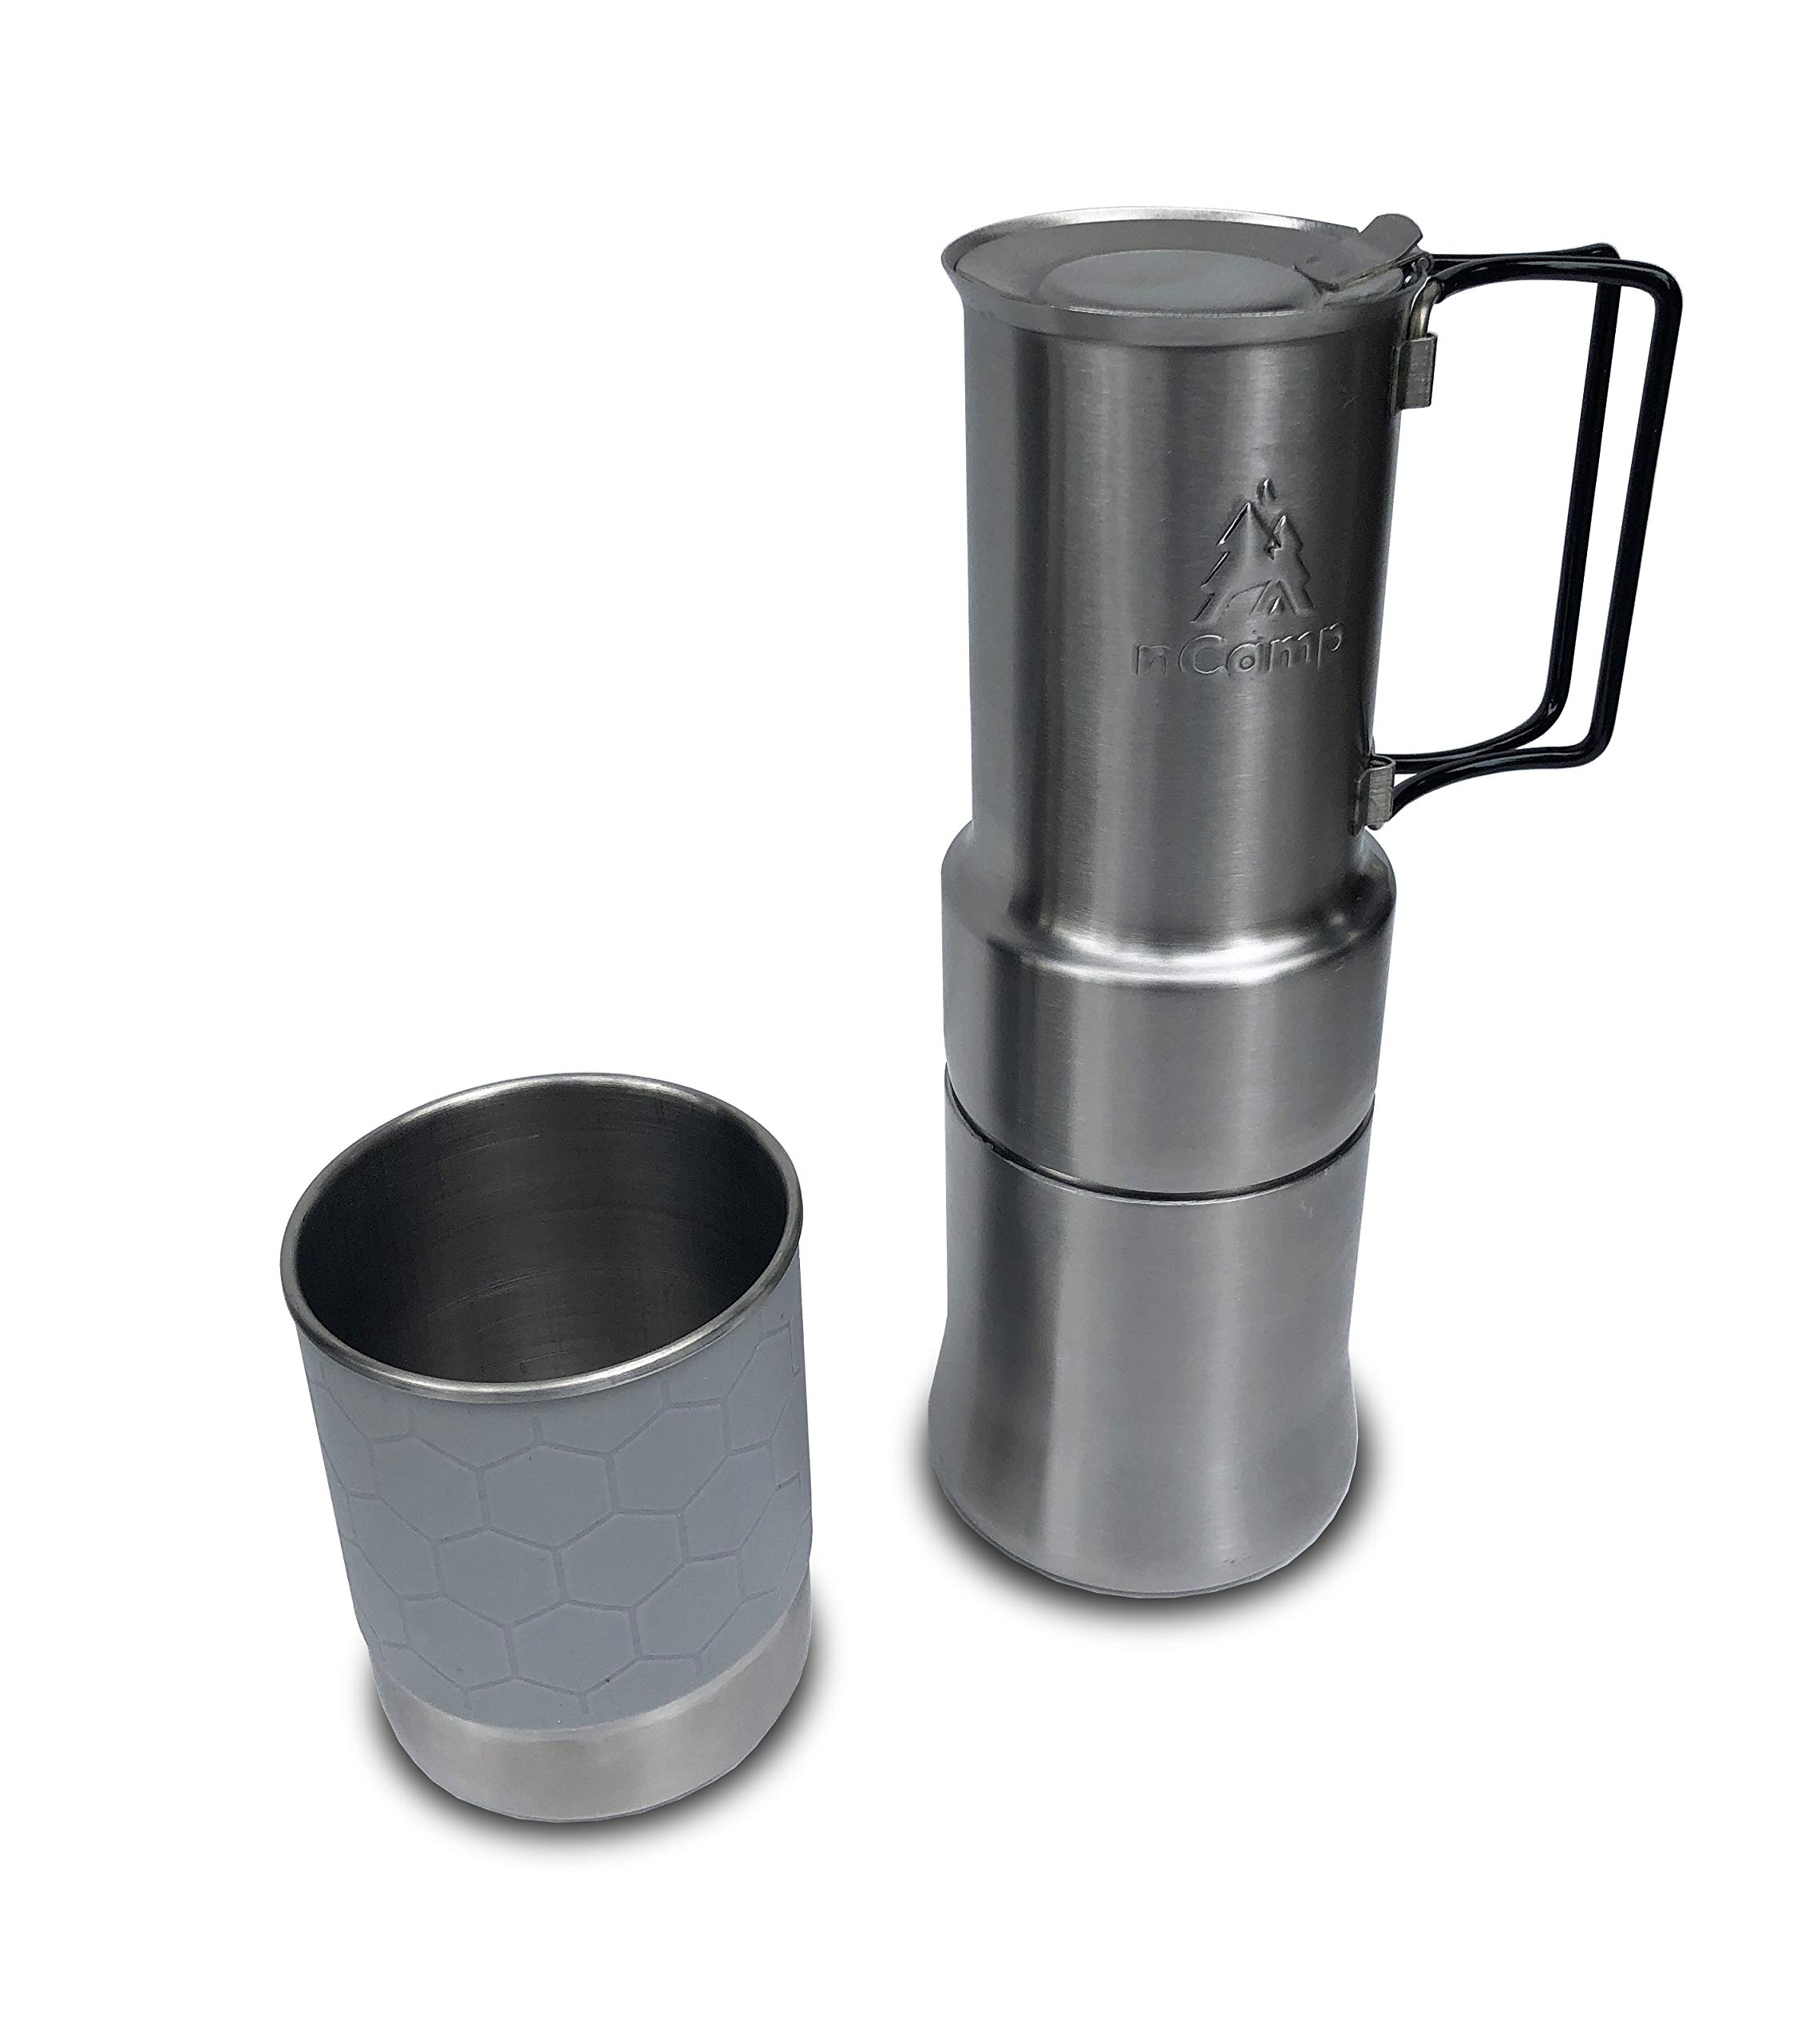 nCamp Portable Coffee Maker, Compact Espresso Style, Stainless Steel Stovetop Cafe Gear for Camping Backpacking Hiking Outdoor Cooking Camp Chef Stove by nCamp